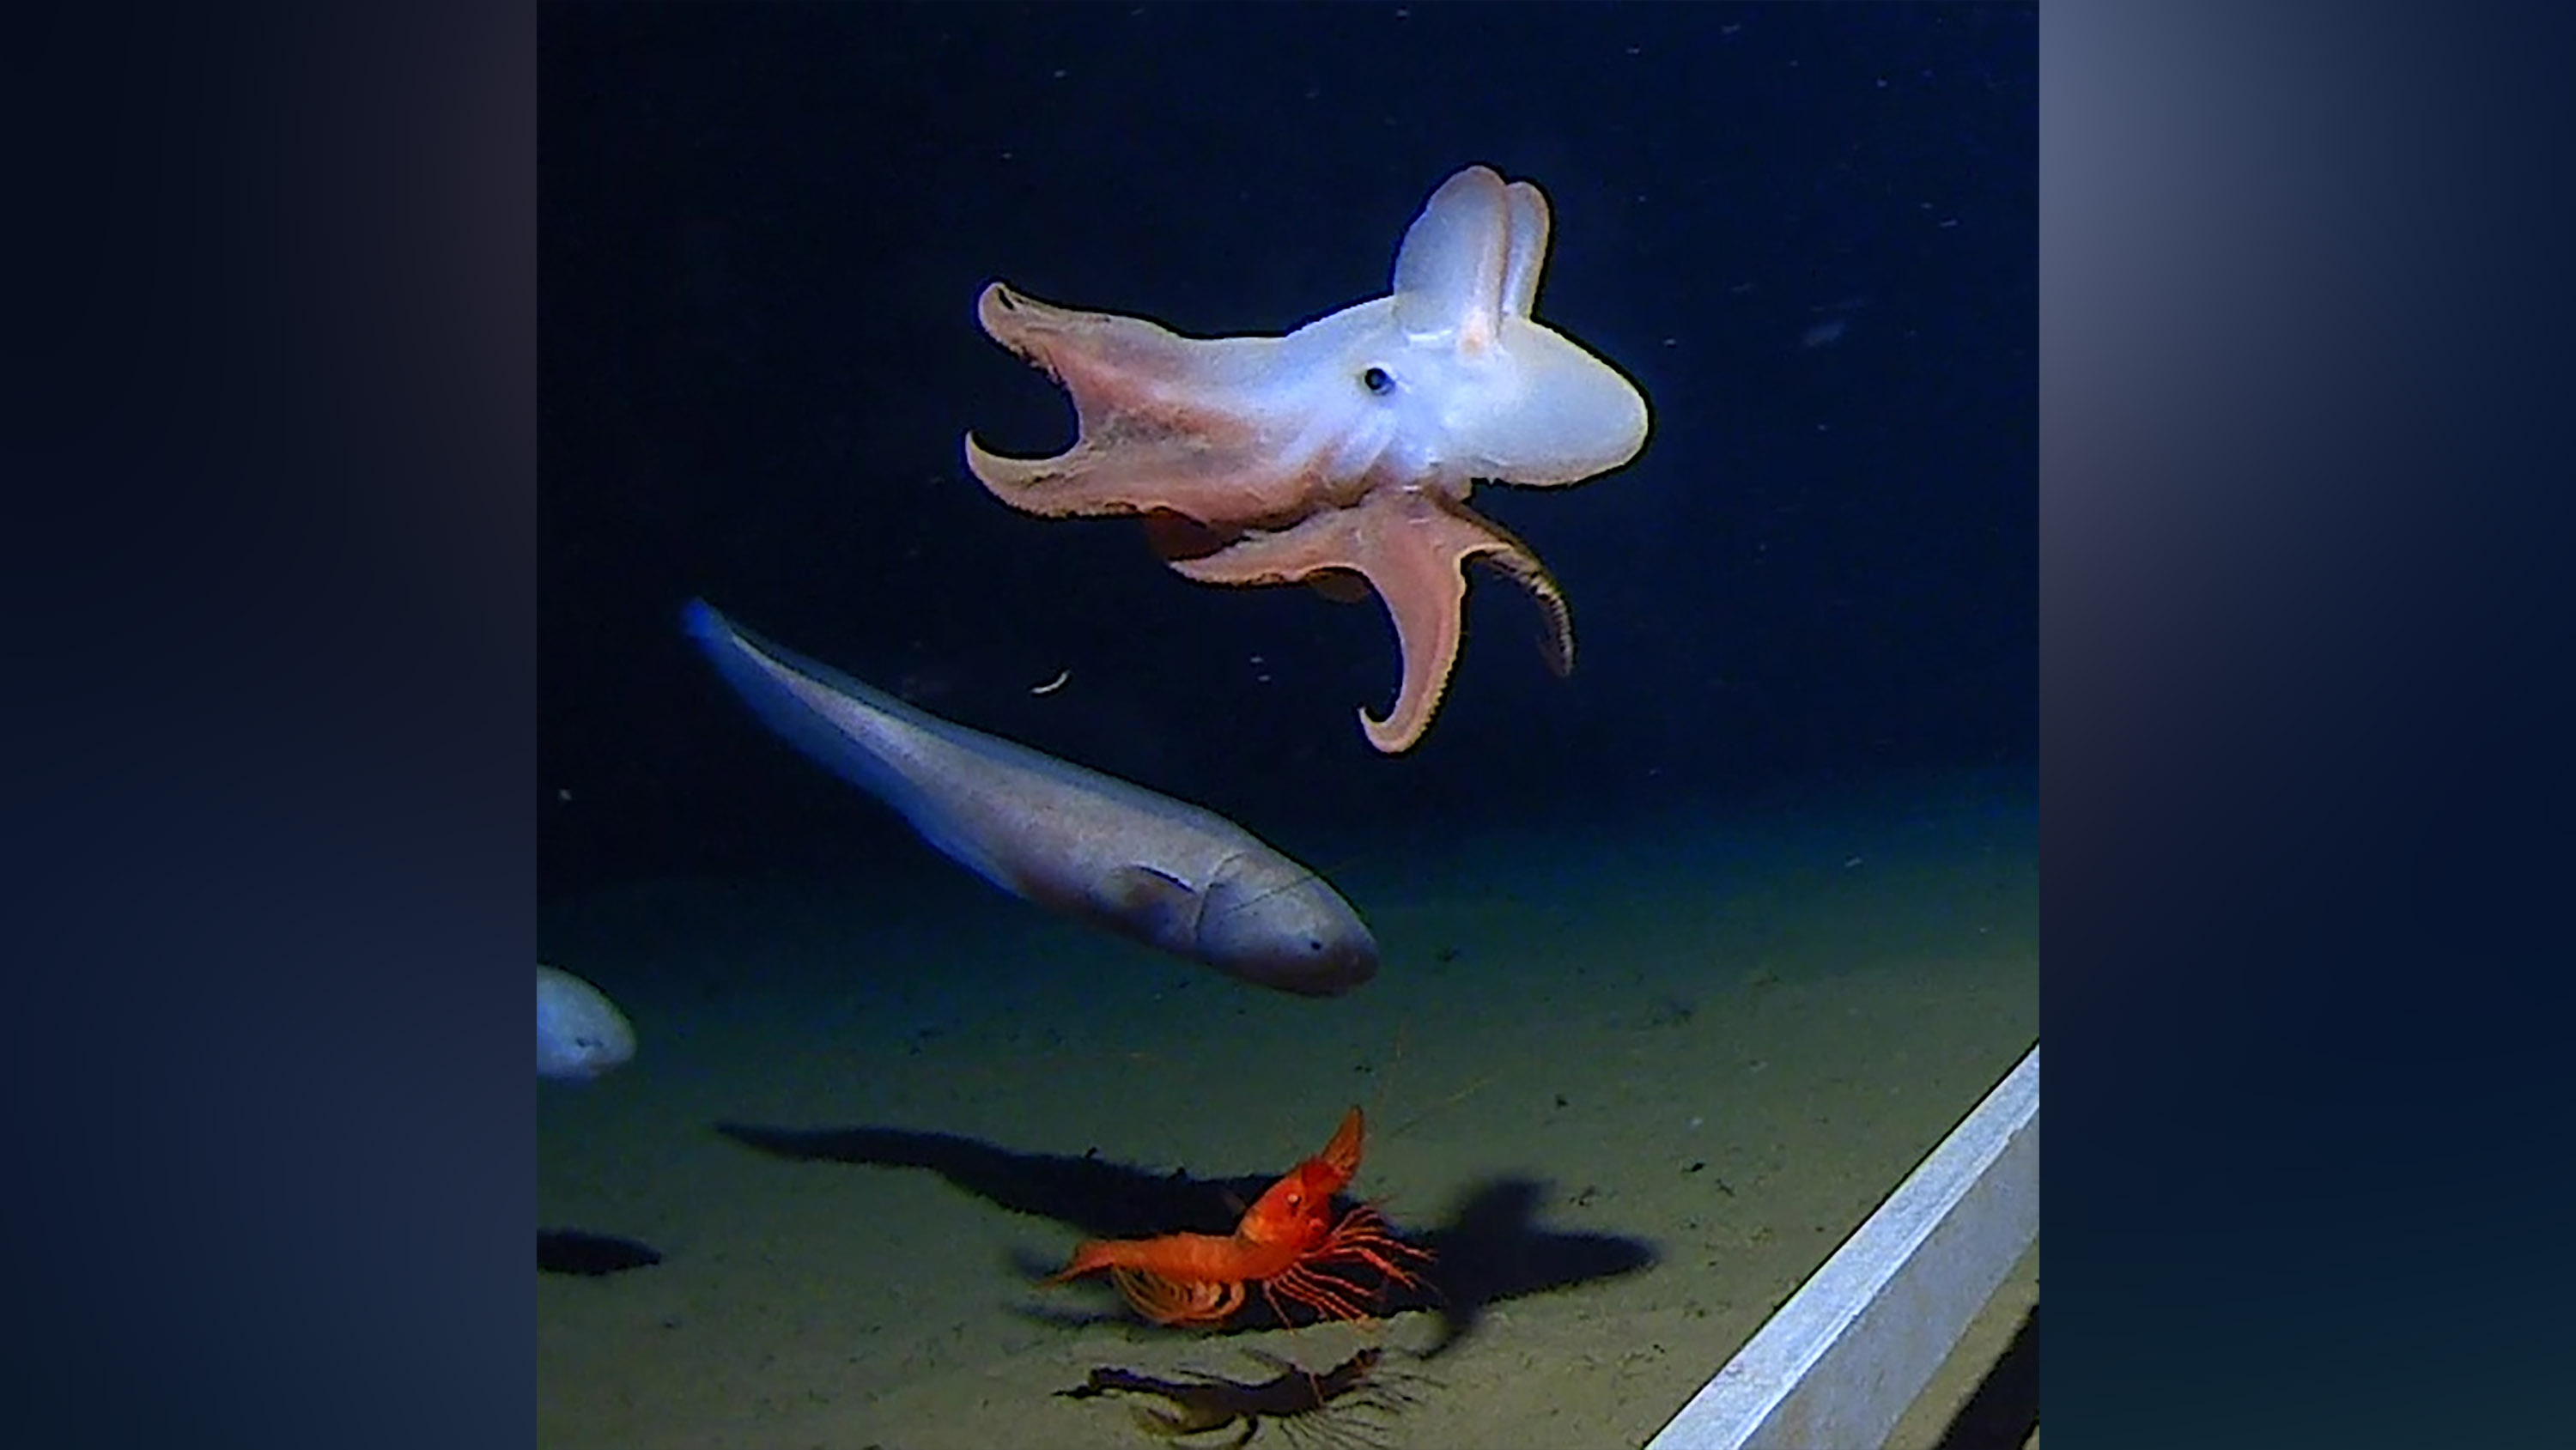 World's deepest octopus, complete with Dumbo ears, captured on film 4 miles below the surface